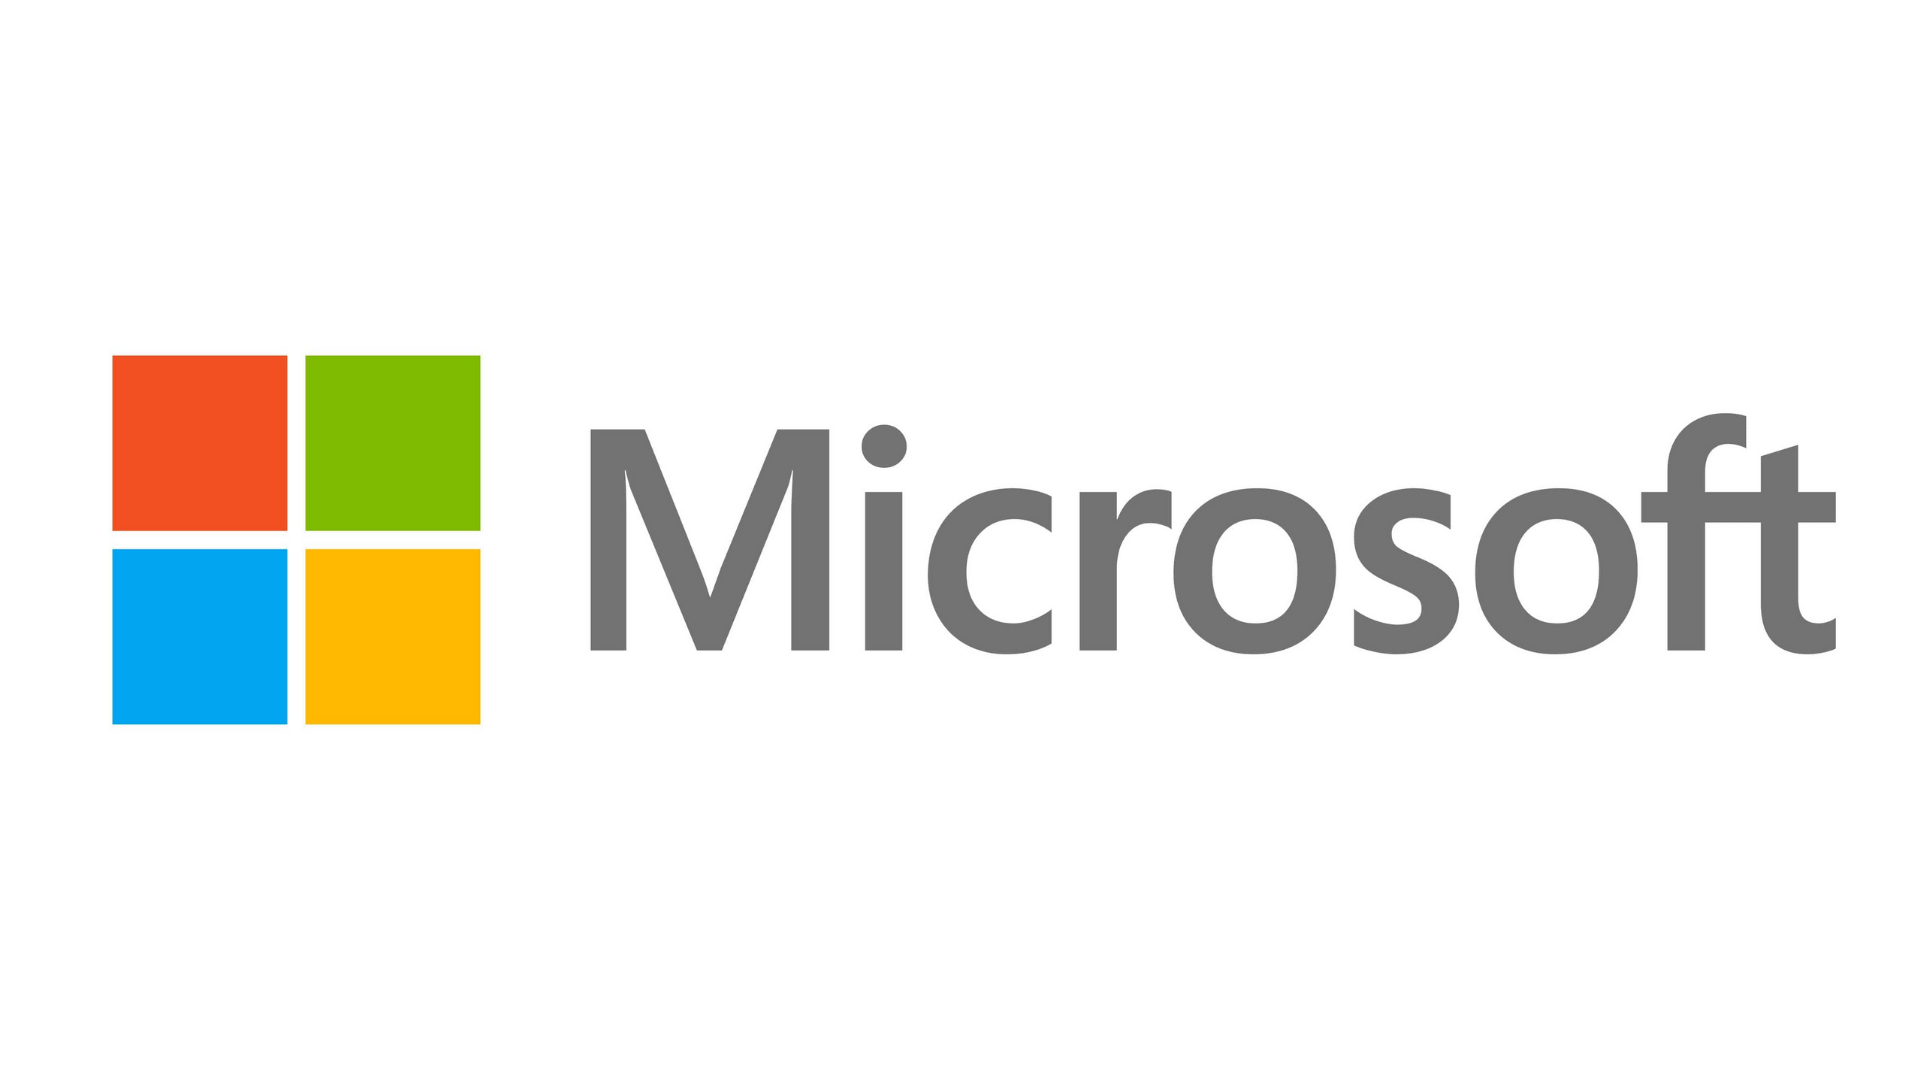 Microsoft 365, Office, Windows 10, and Server